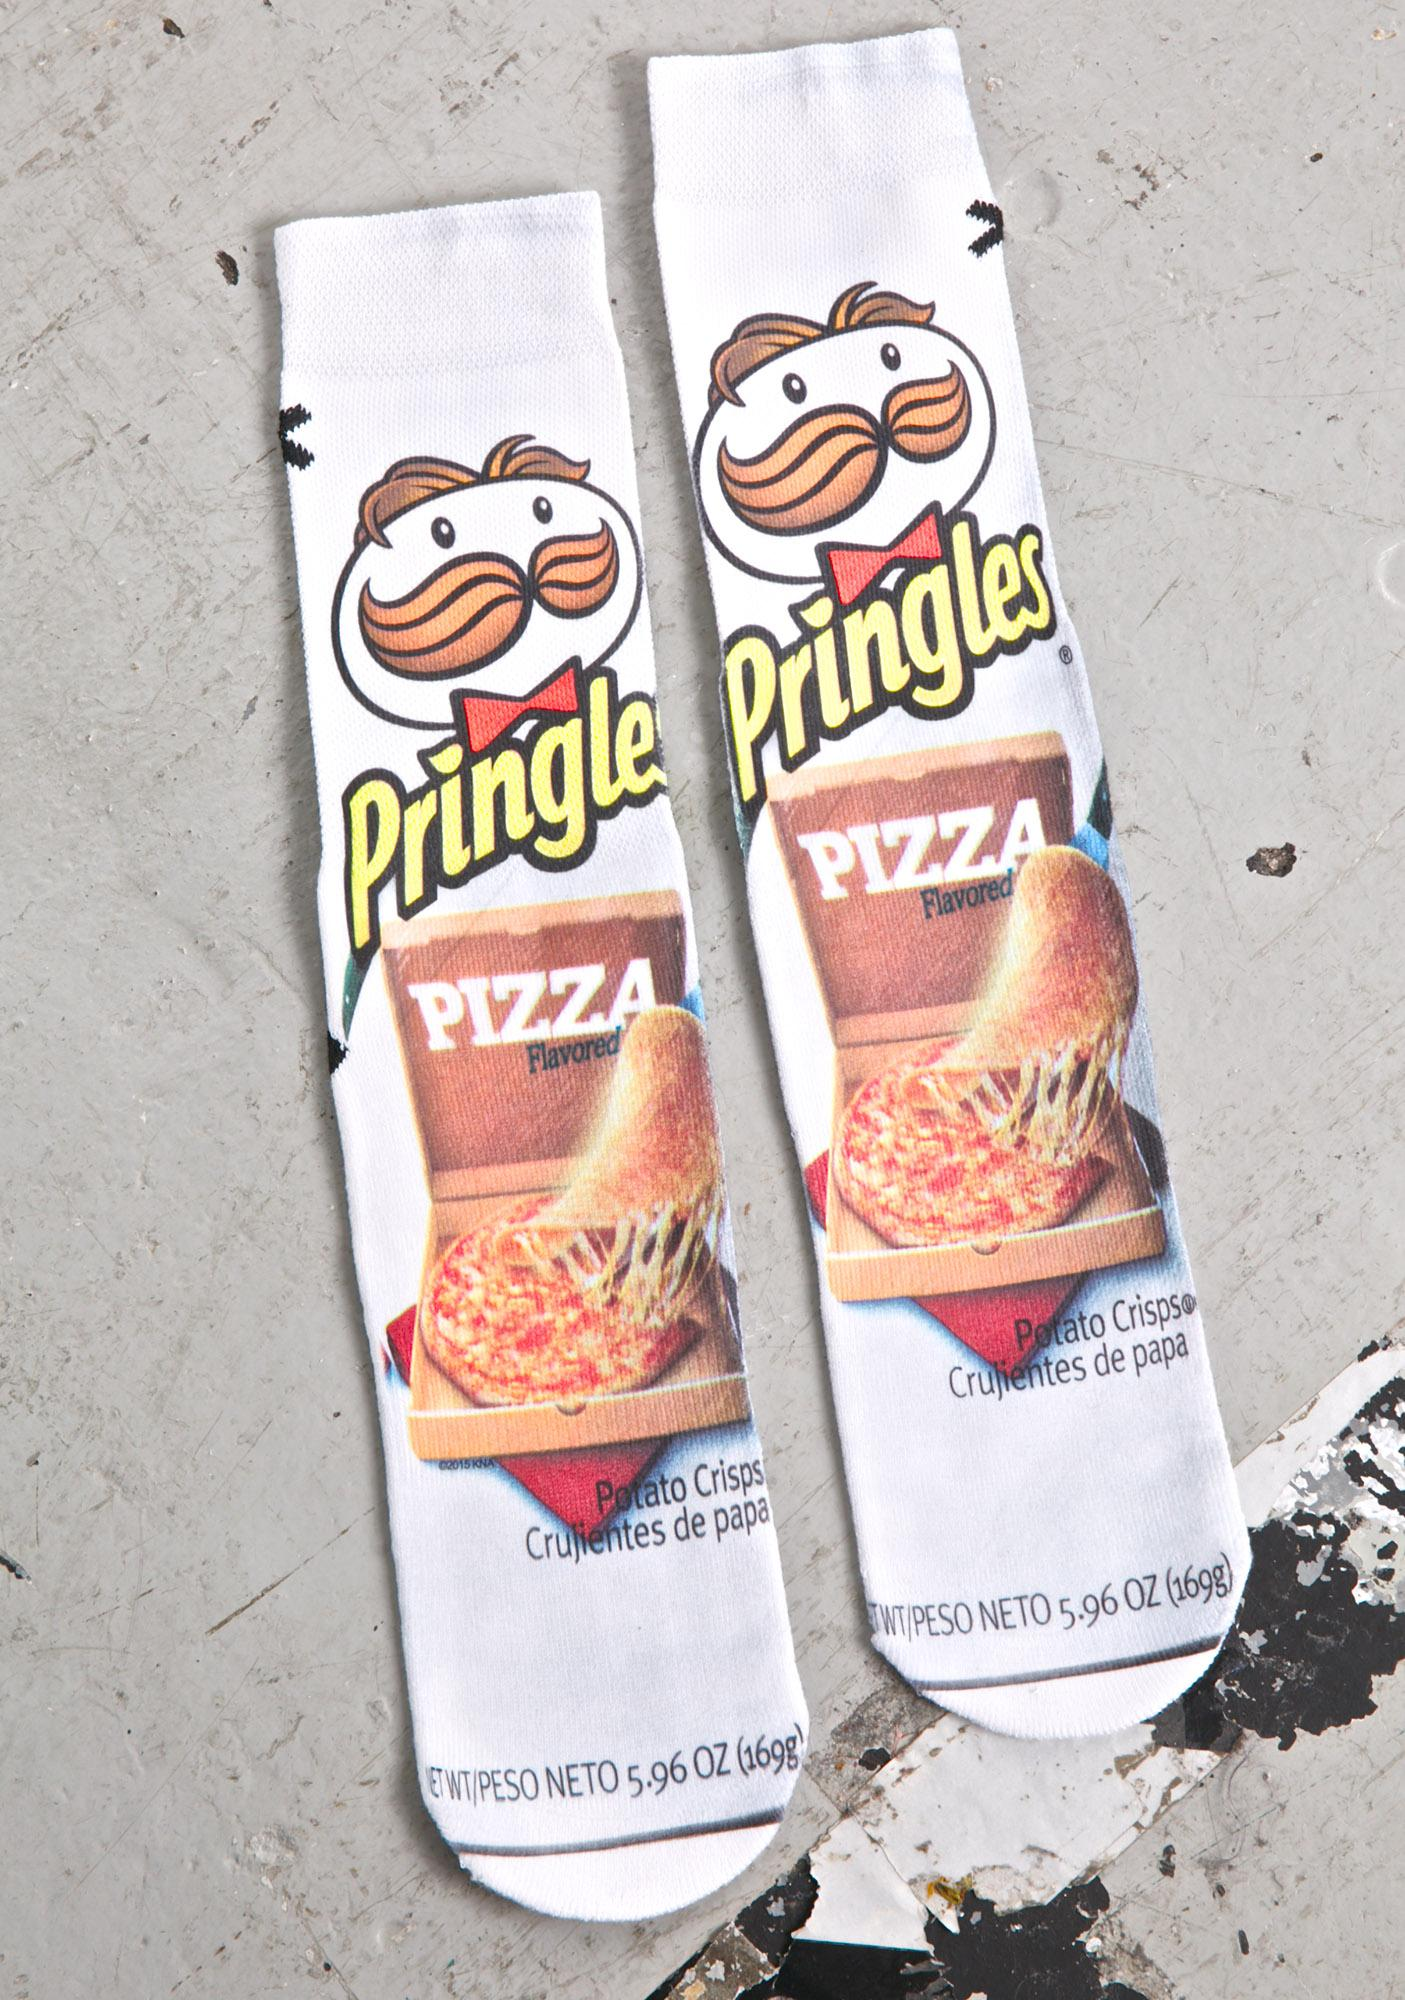 Odd Sox Pizza Pringles Socks